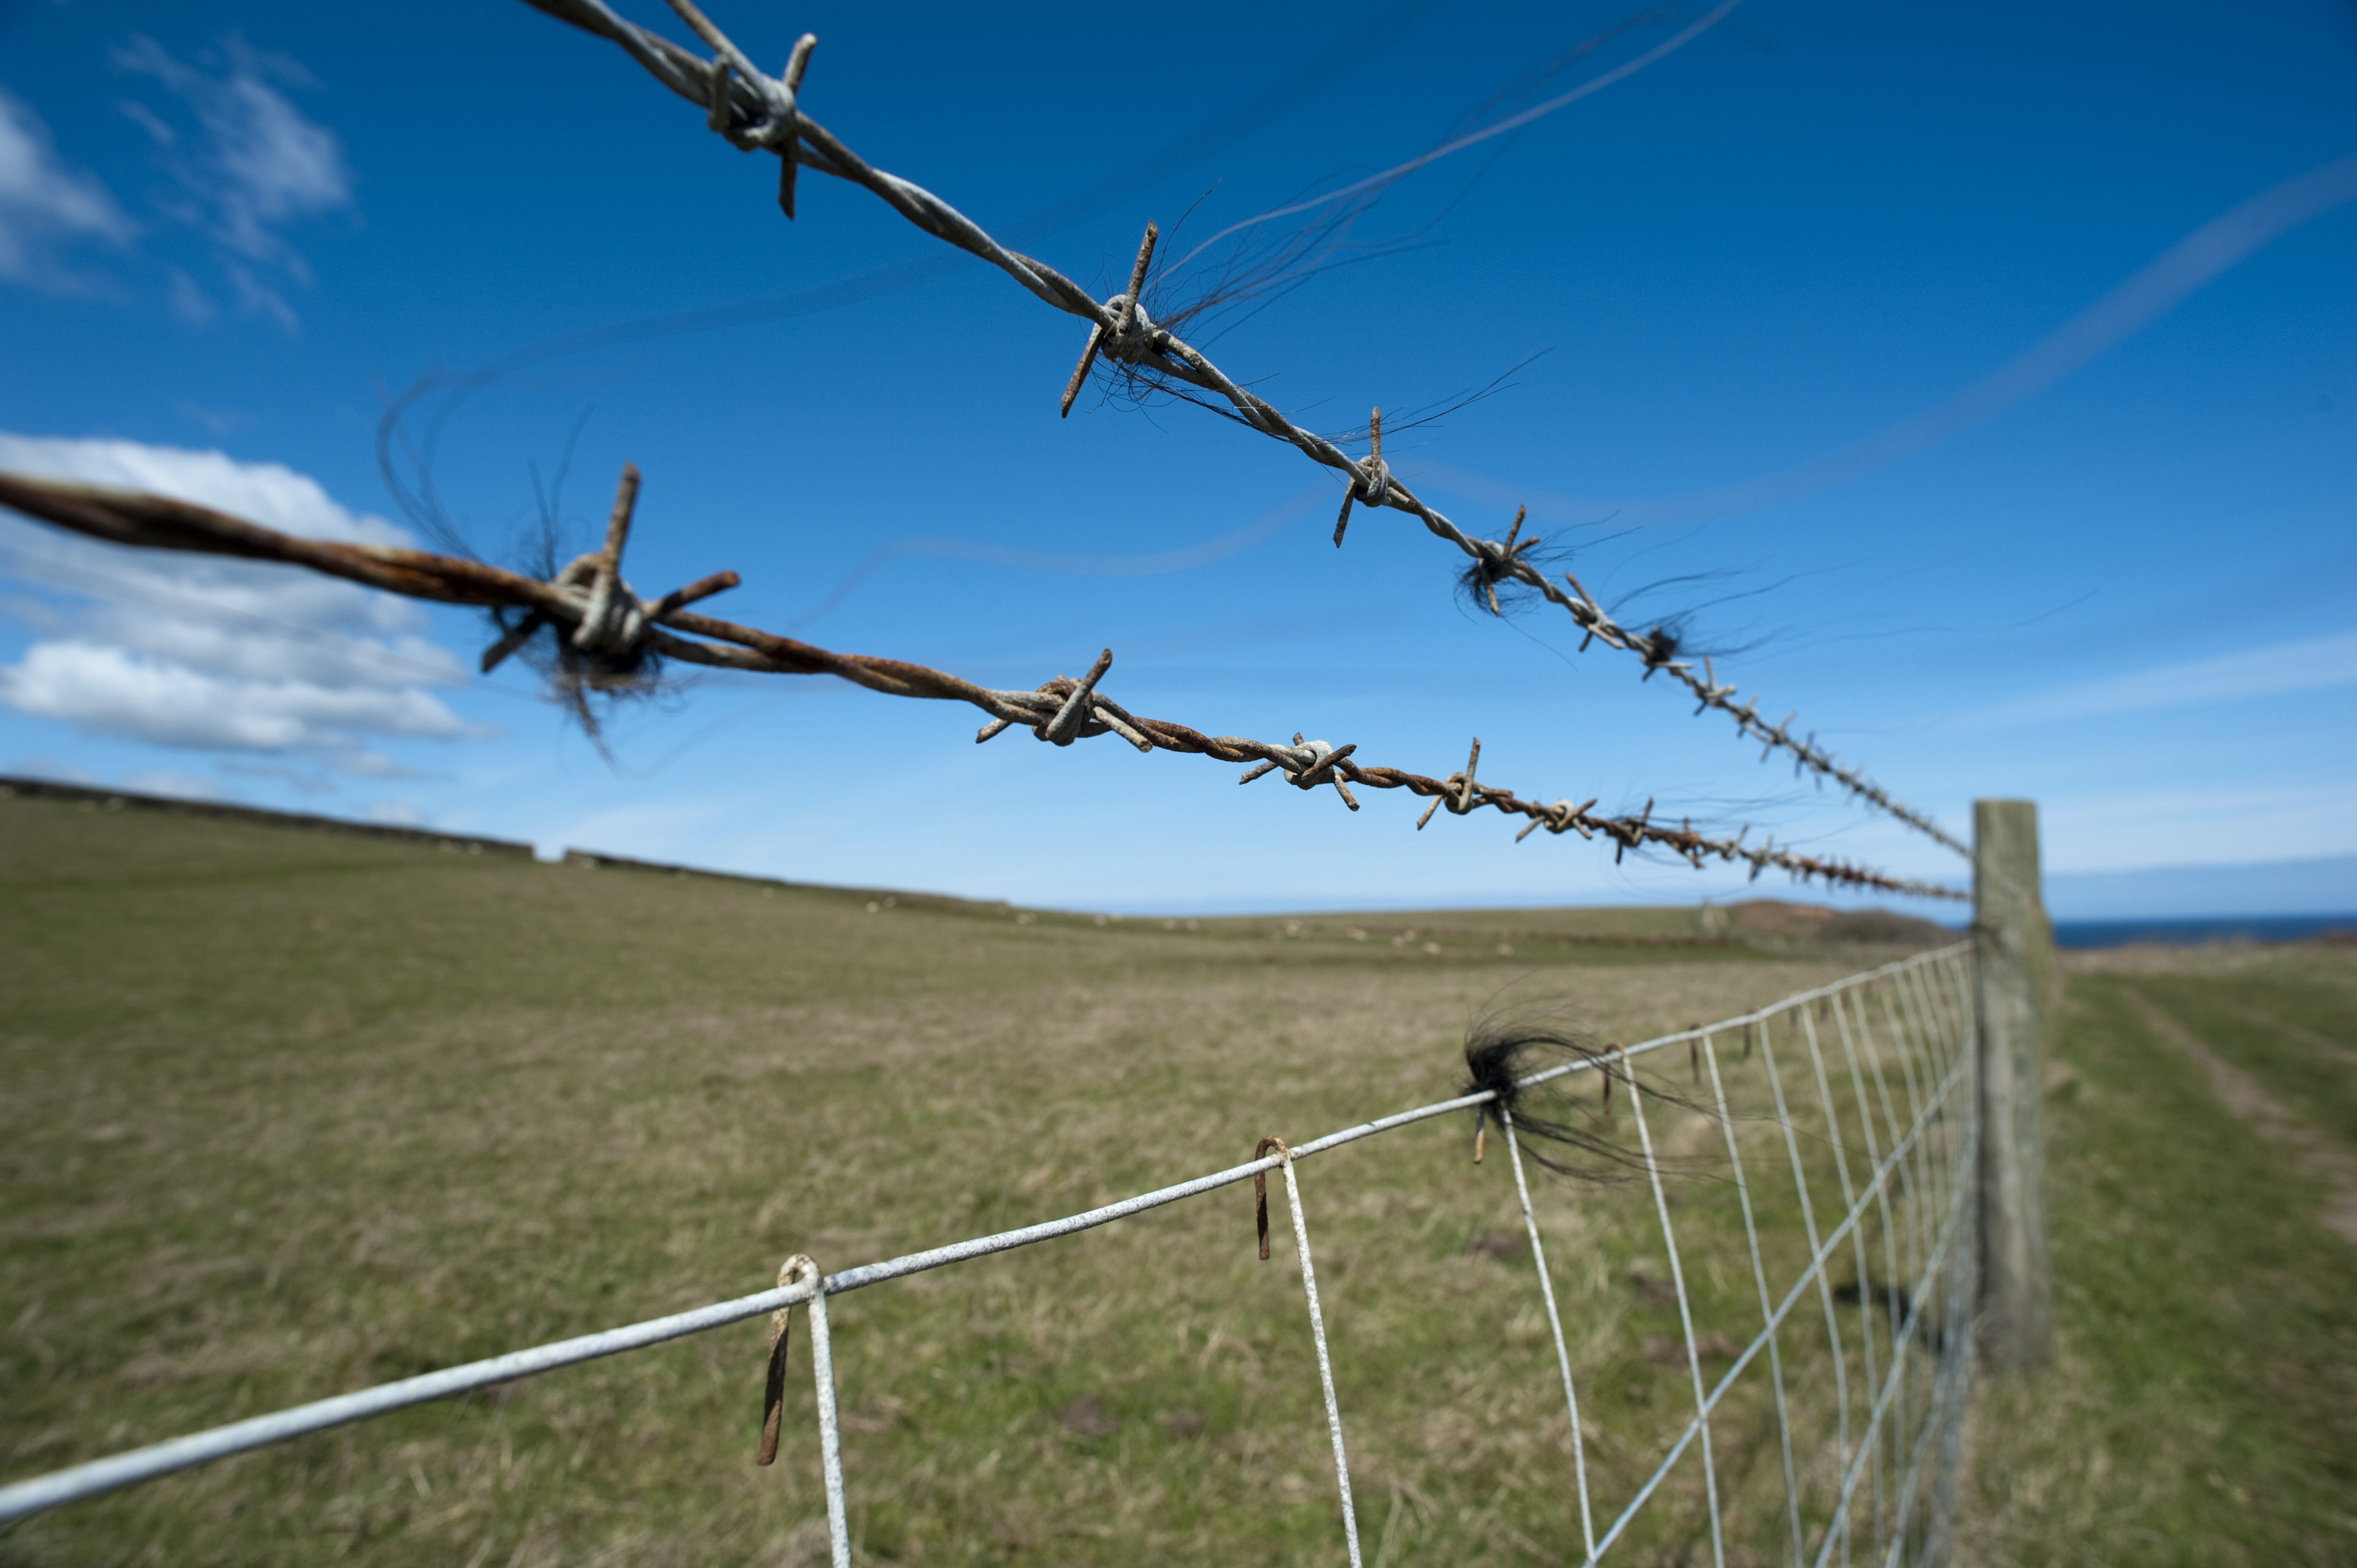 Barb wire strands-4275 | Stockarch Free Stock Photos